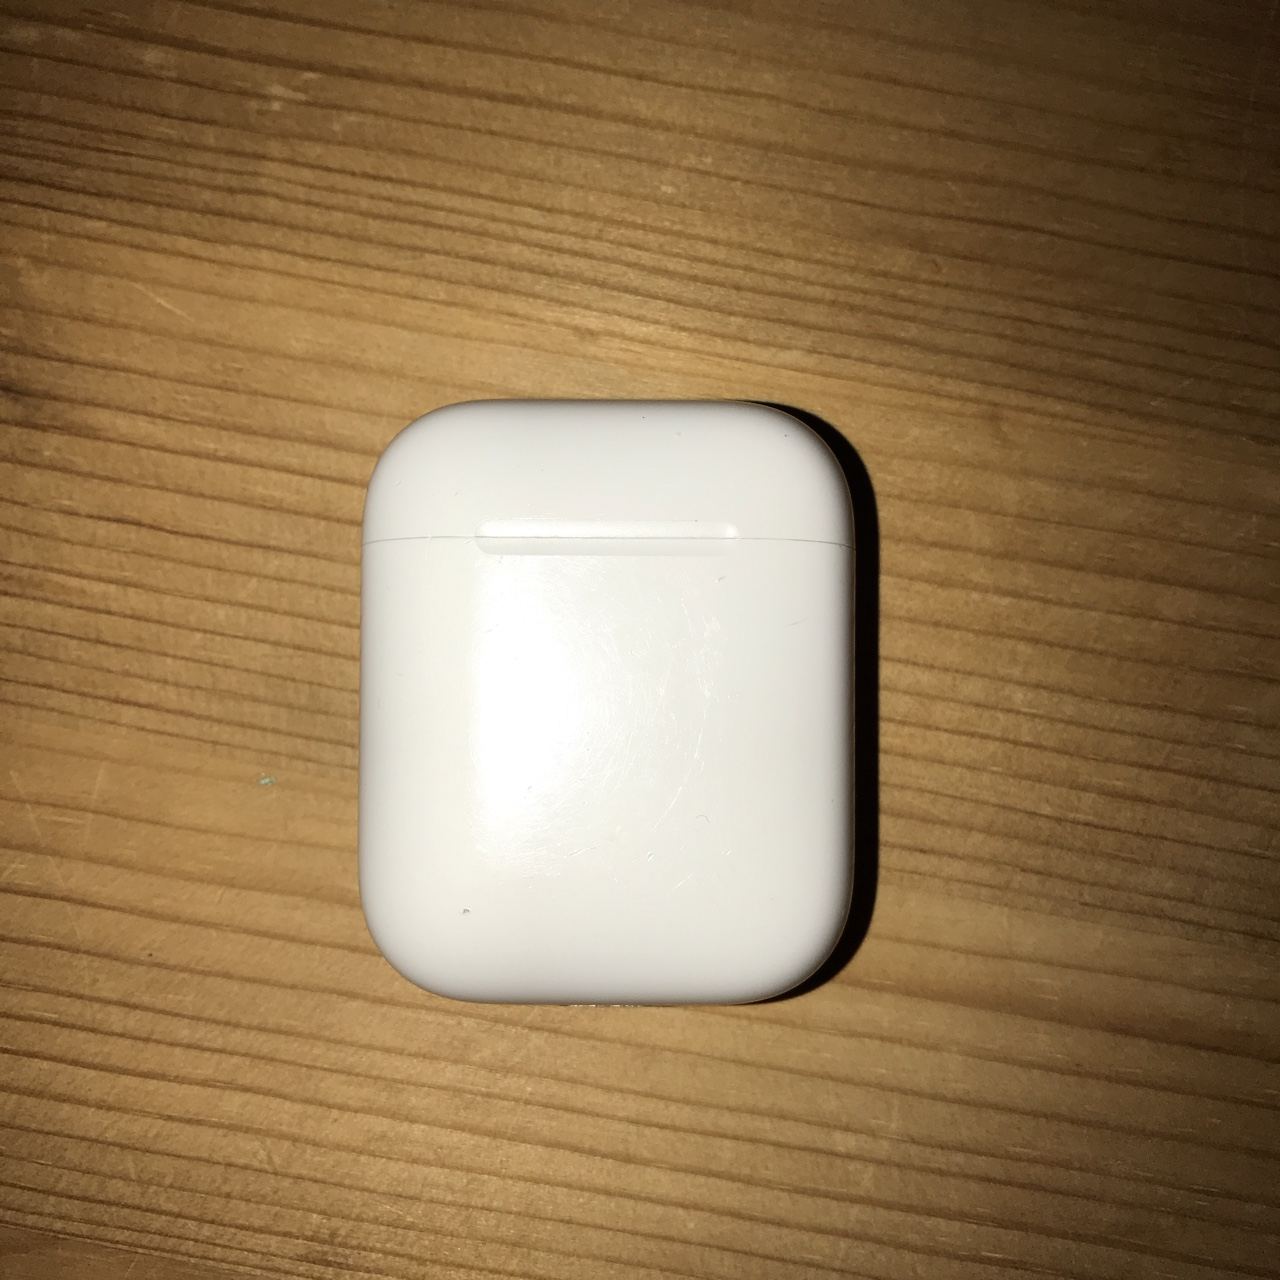 Generation 1 Airpods Good Condition Lost Box But Depop